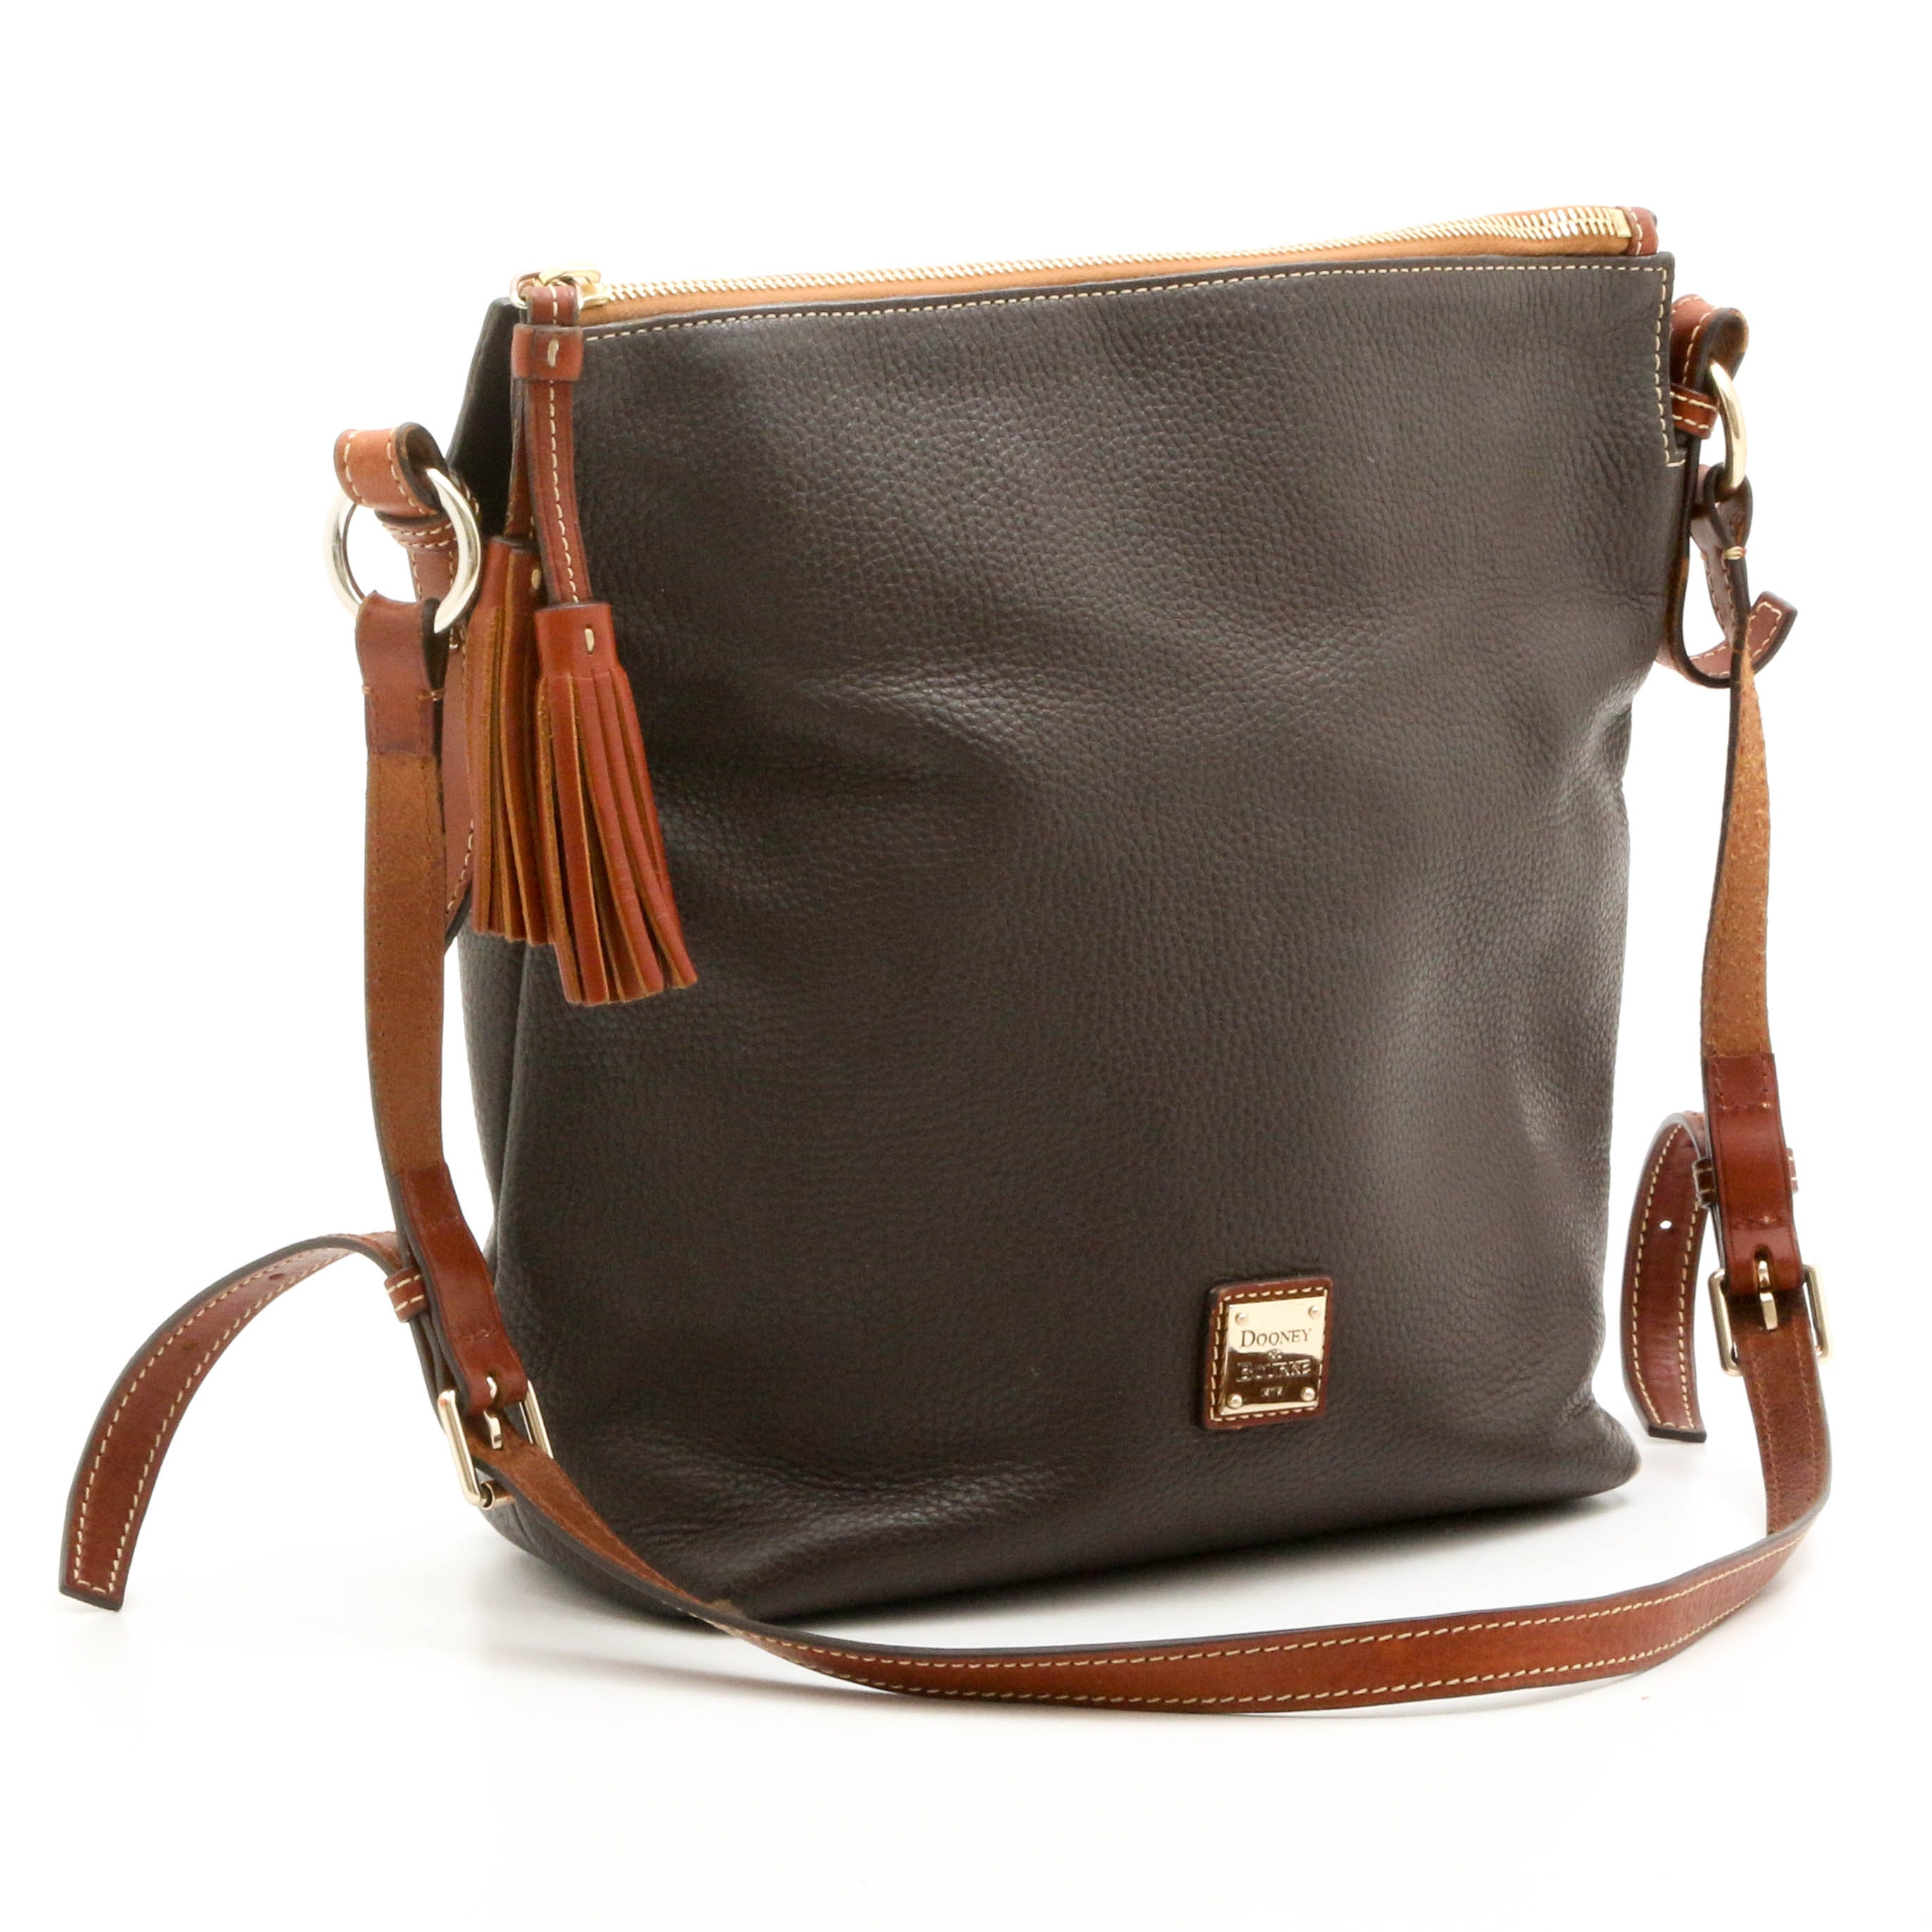 Dooney & Bourke Two-Tone Pebbled Leather Crossbody with Tassels